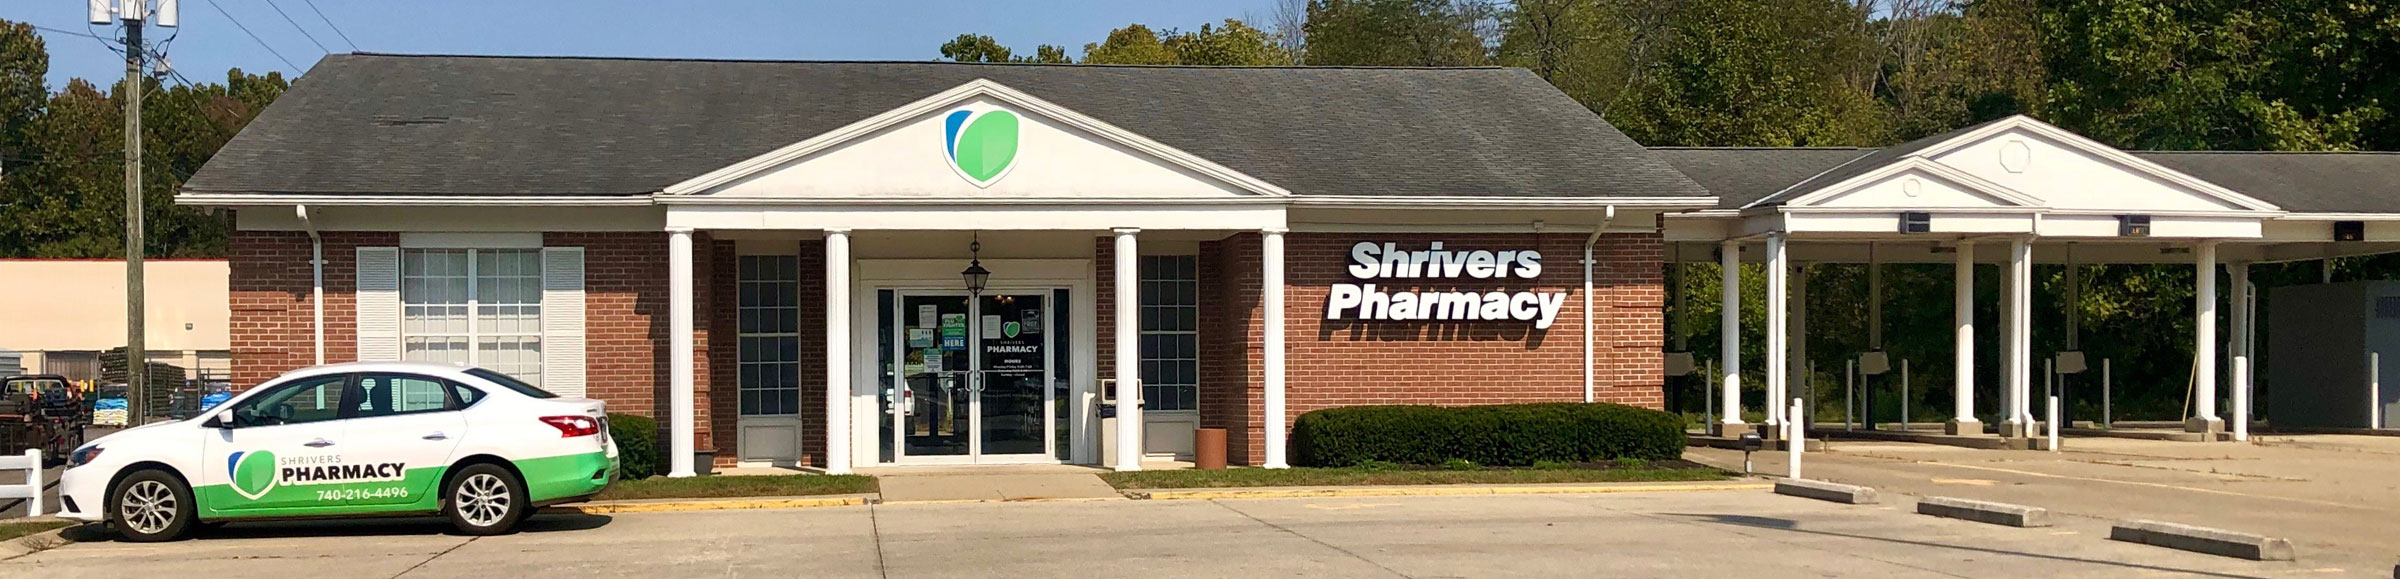 Shrivers-Pharmacy-Logan-Ohio-px